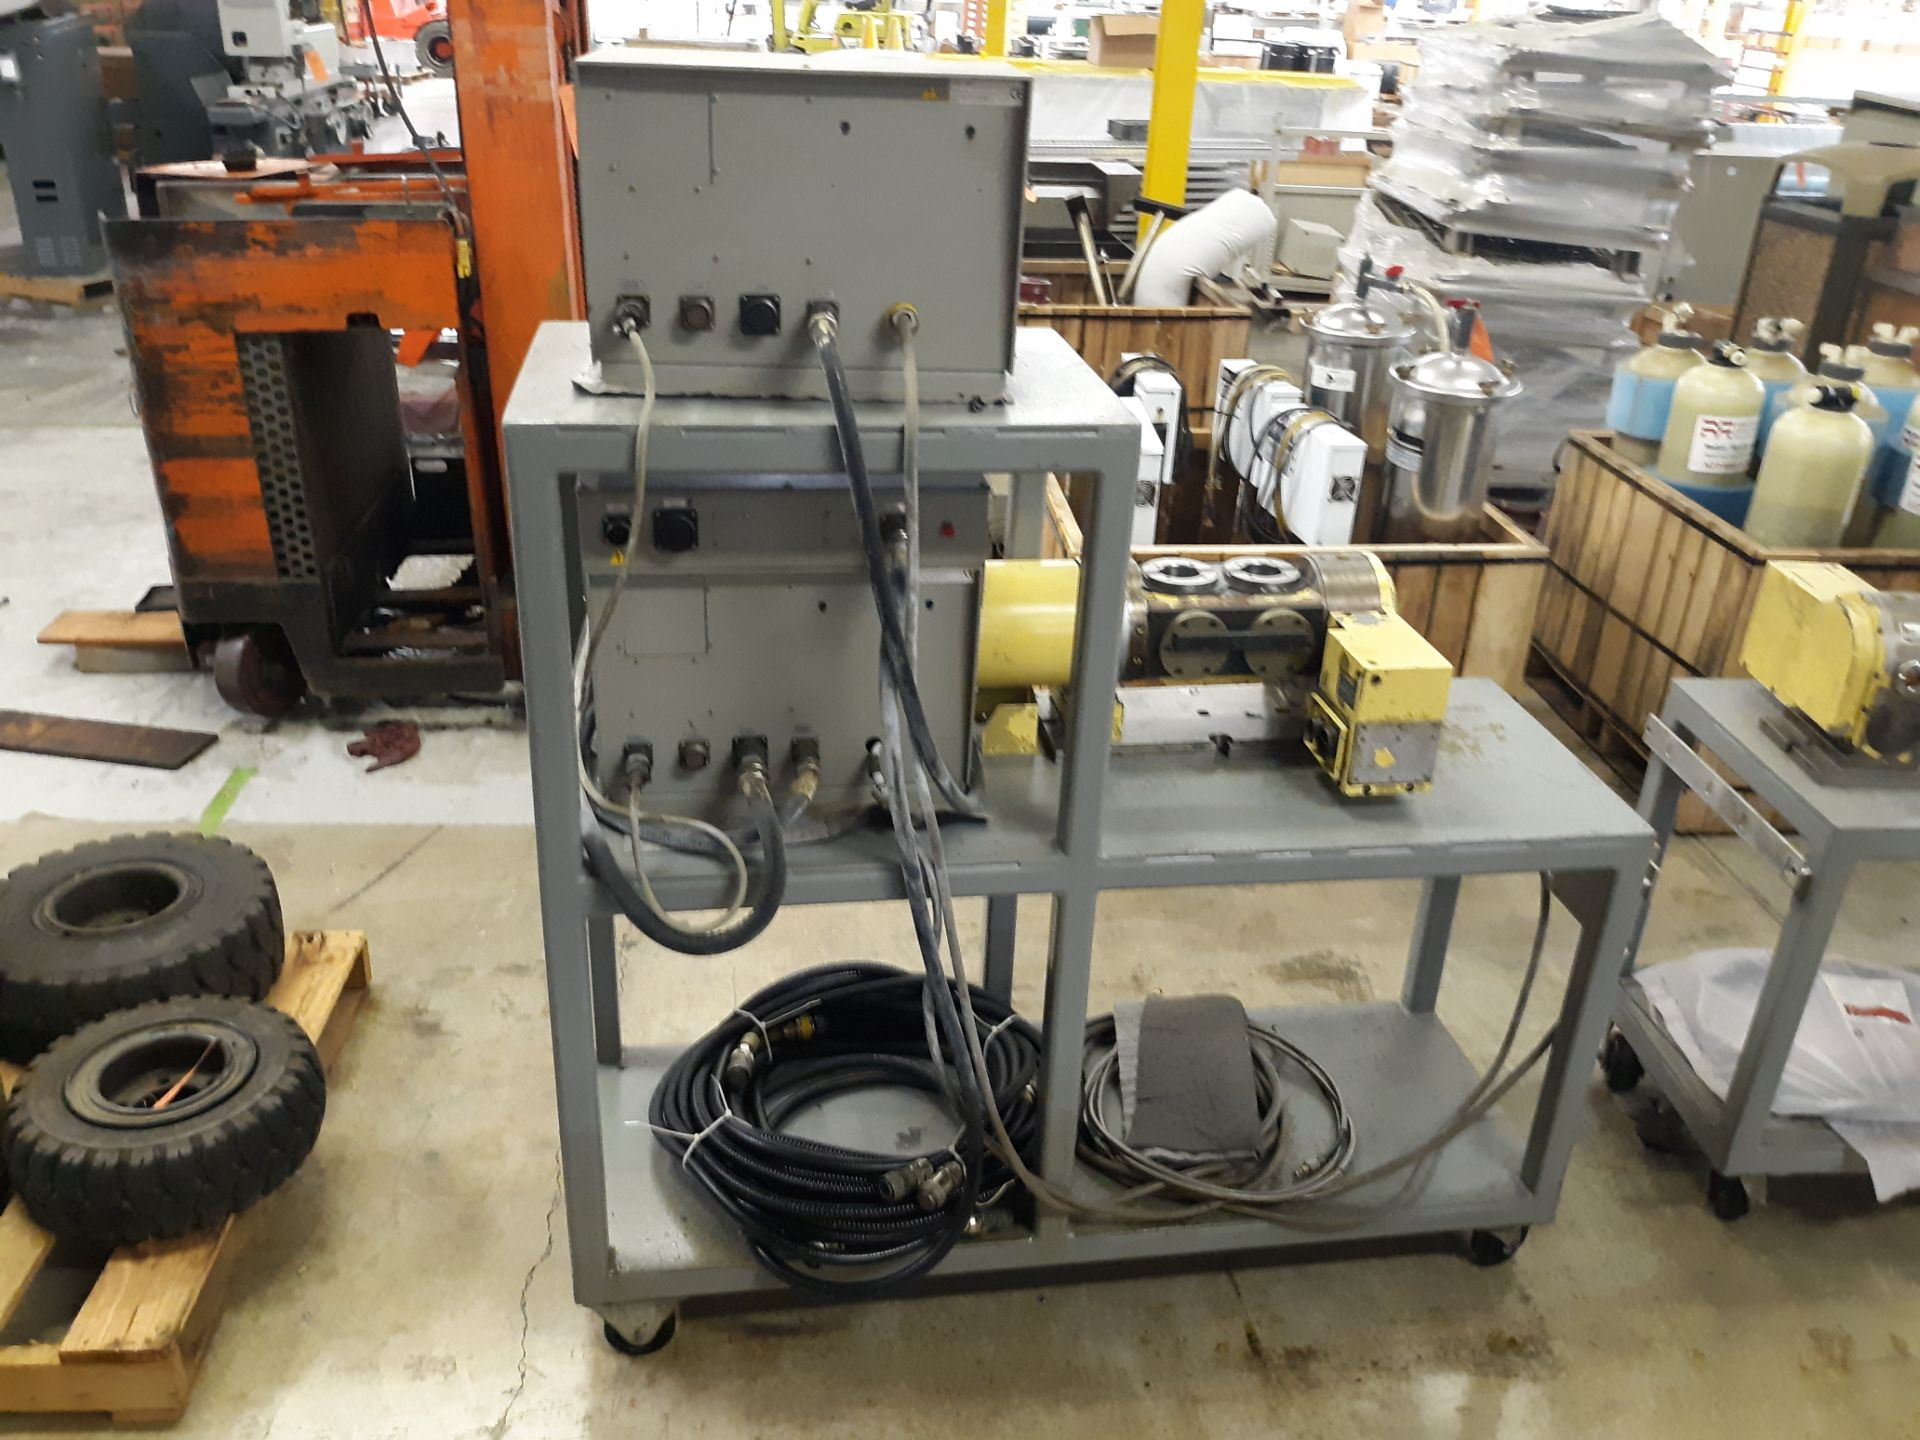 Lot 34 - NIKKEN ROTARY TABLE W/CABLES W(2) CONTROL UNITS (2) NIKKEN KEYPADS; RIGGING FEE: $10